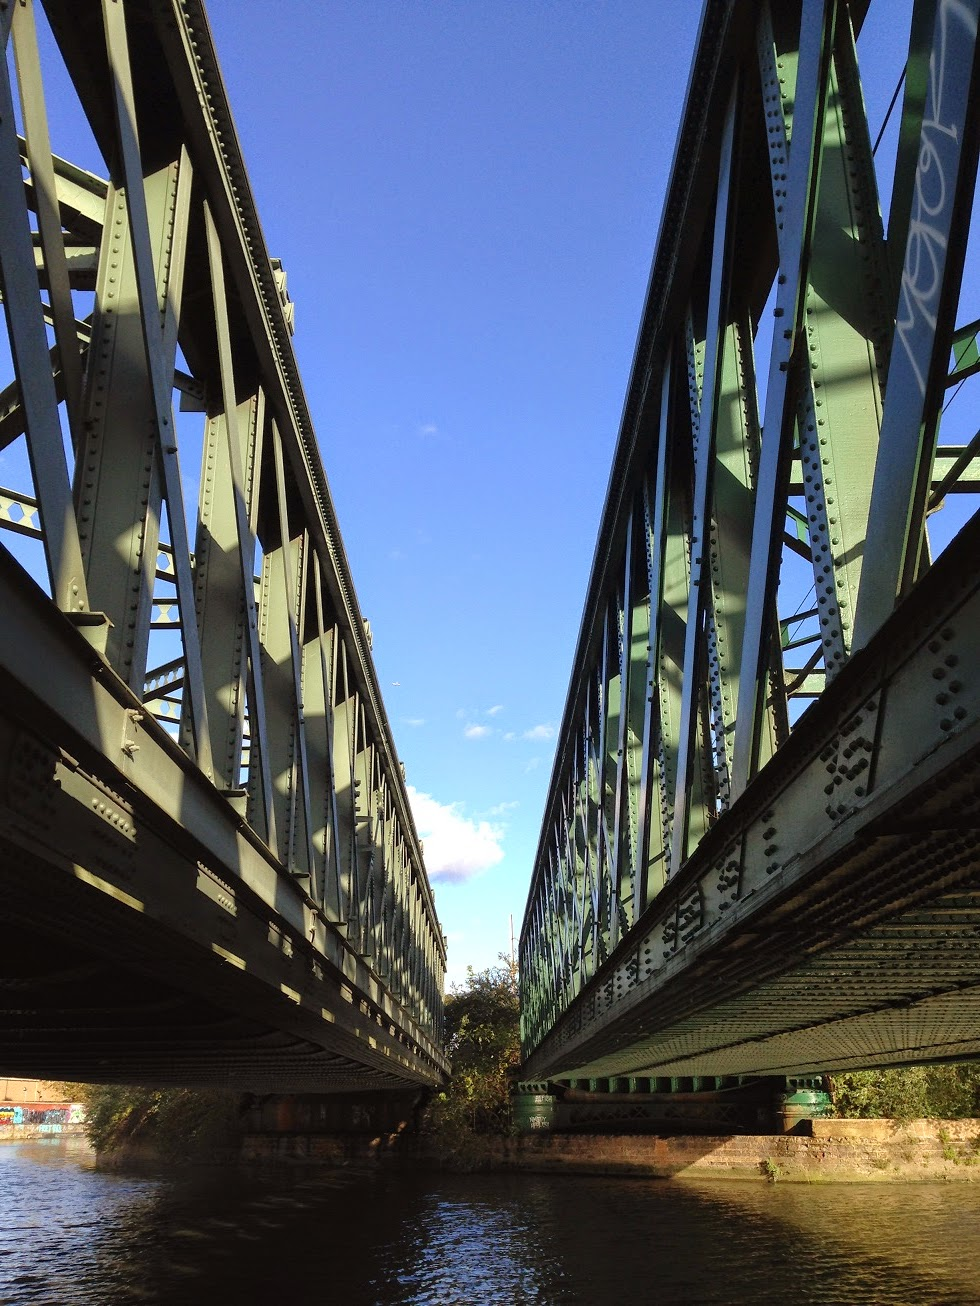 Railway bridge over the River Lea, Bromley-by-Bow, London